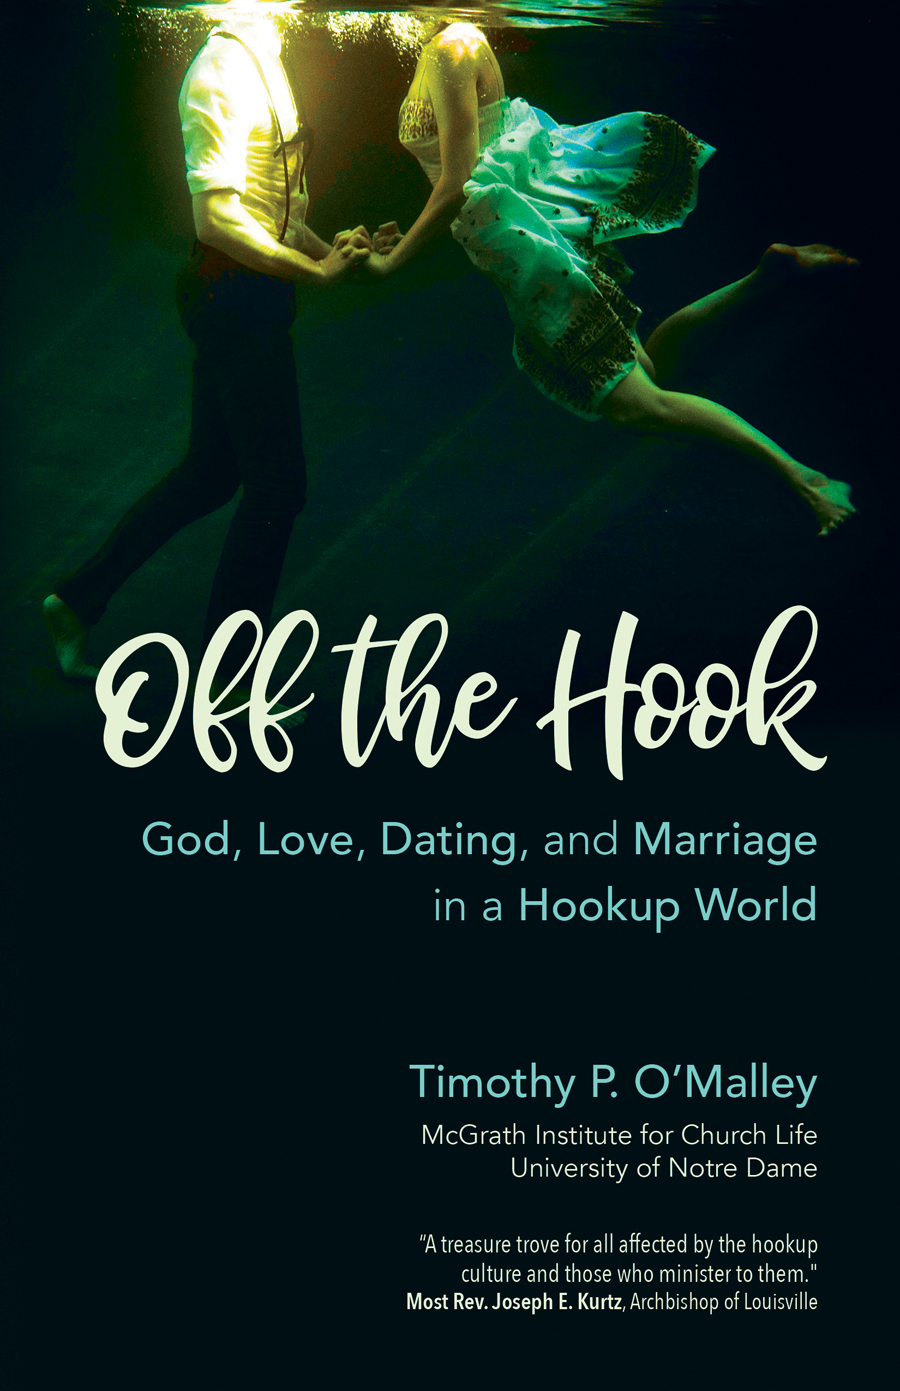 What the bible says about hookup and relationships